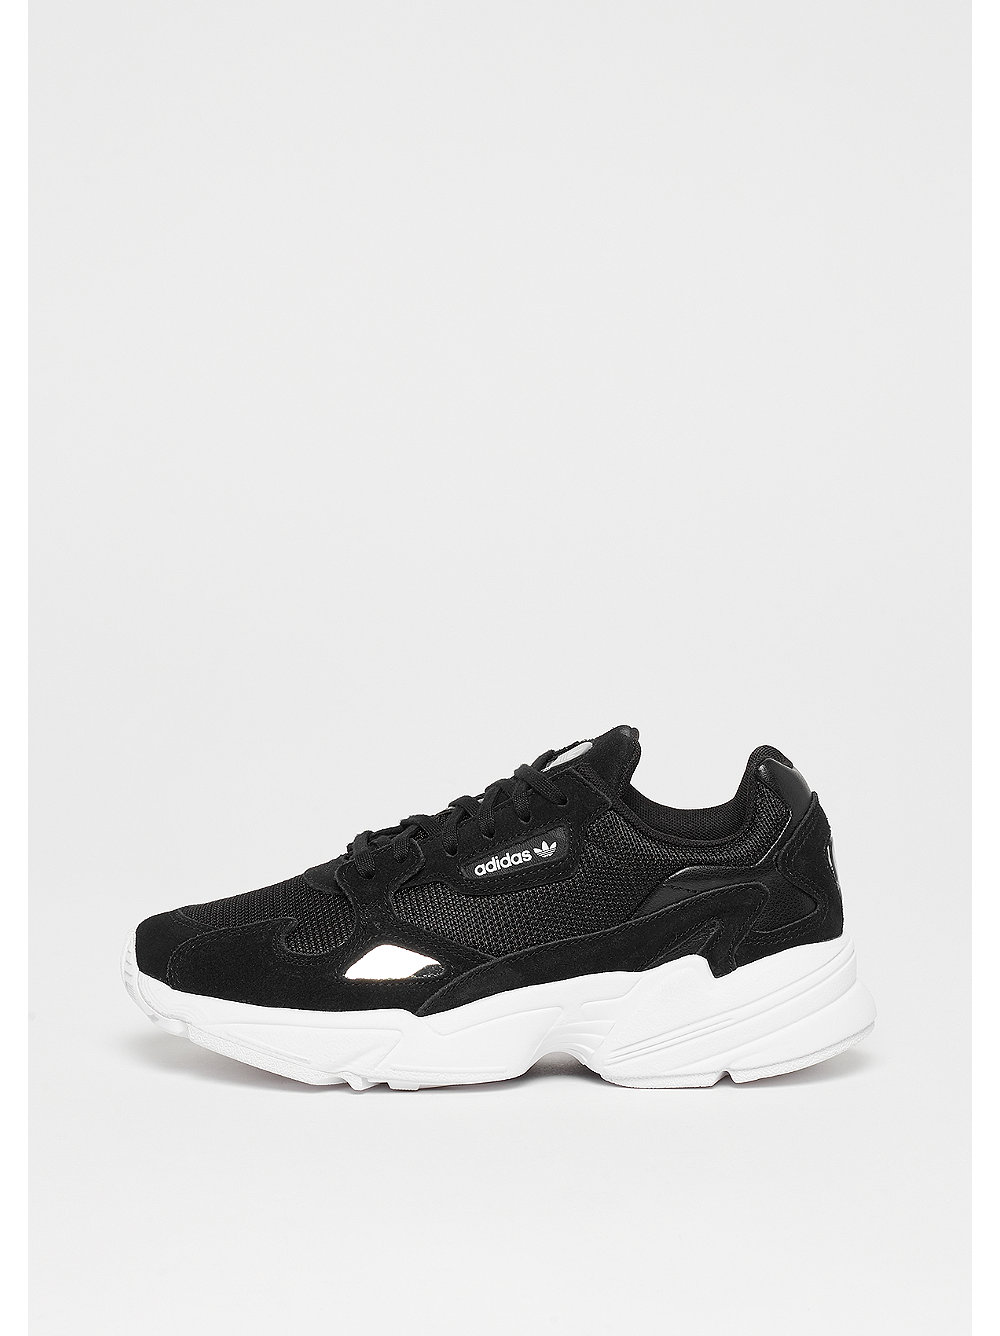 premium selection f513e 35451 Ordina adidas Falcon core black Sneaker su SNIPES!